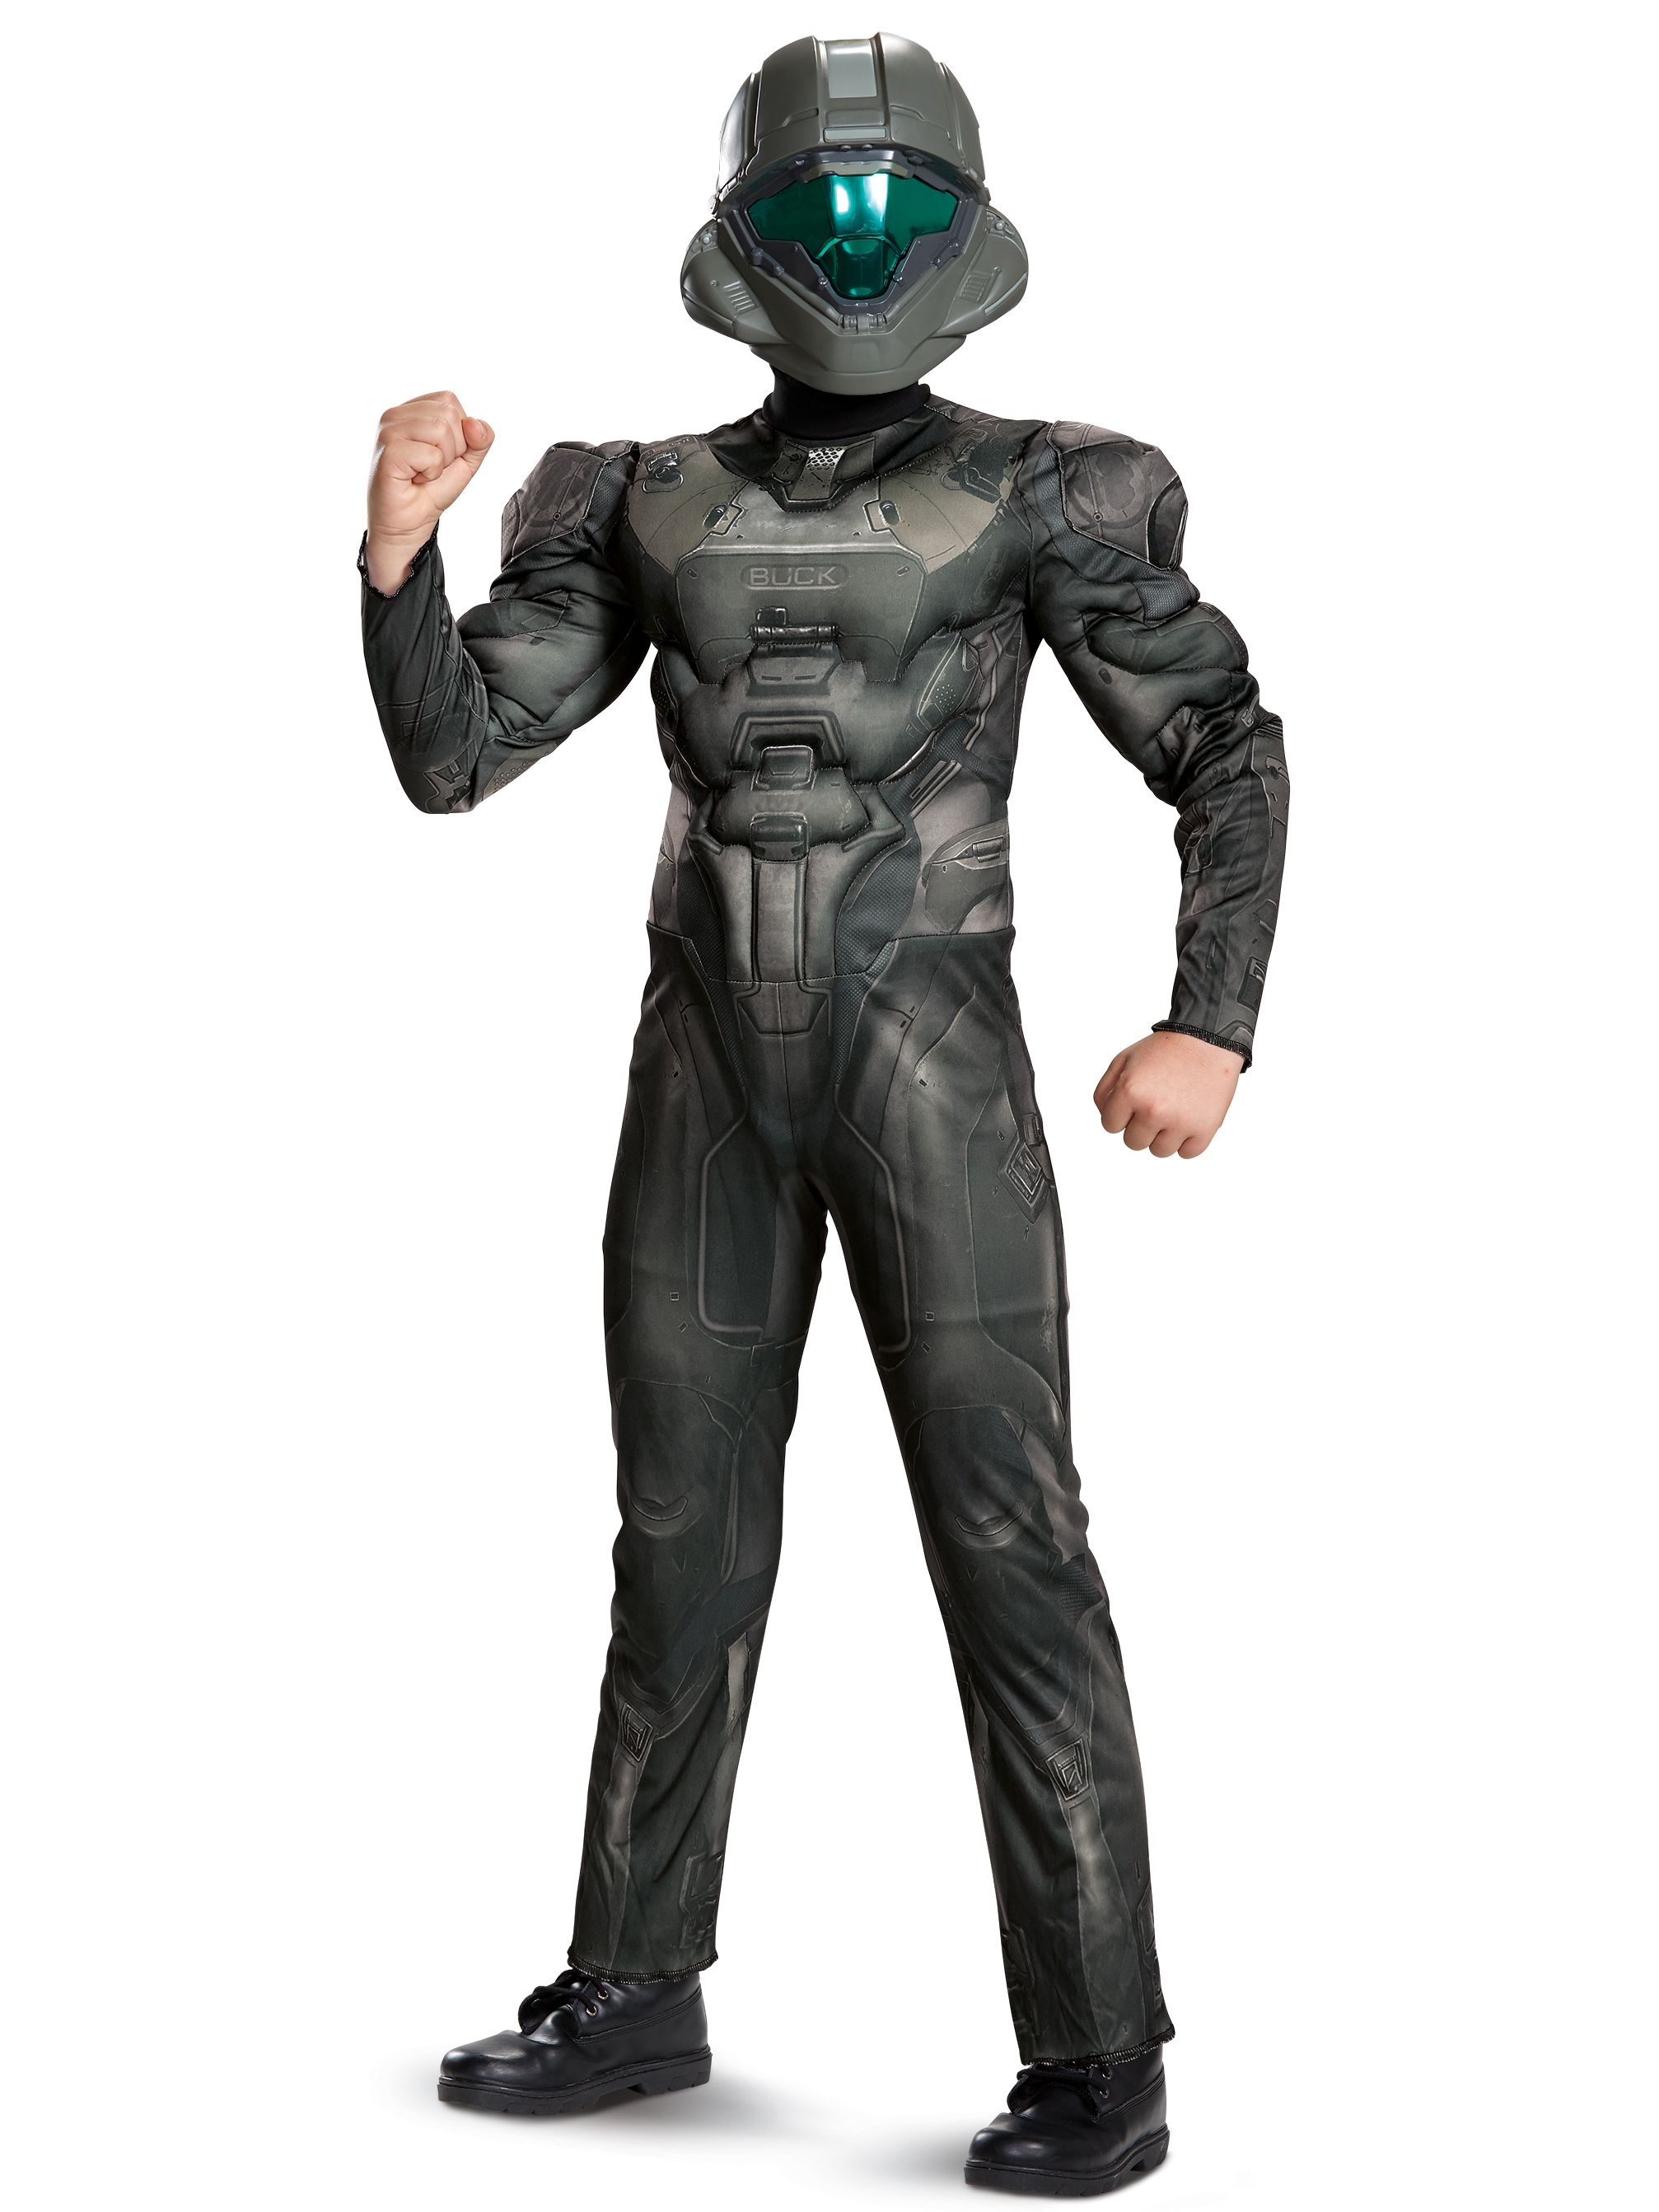 Halo Spartan Buck Classic Muscle Child Costume DI24396-S